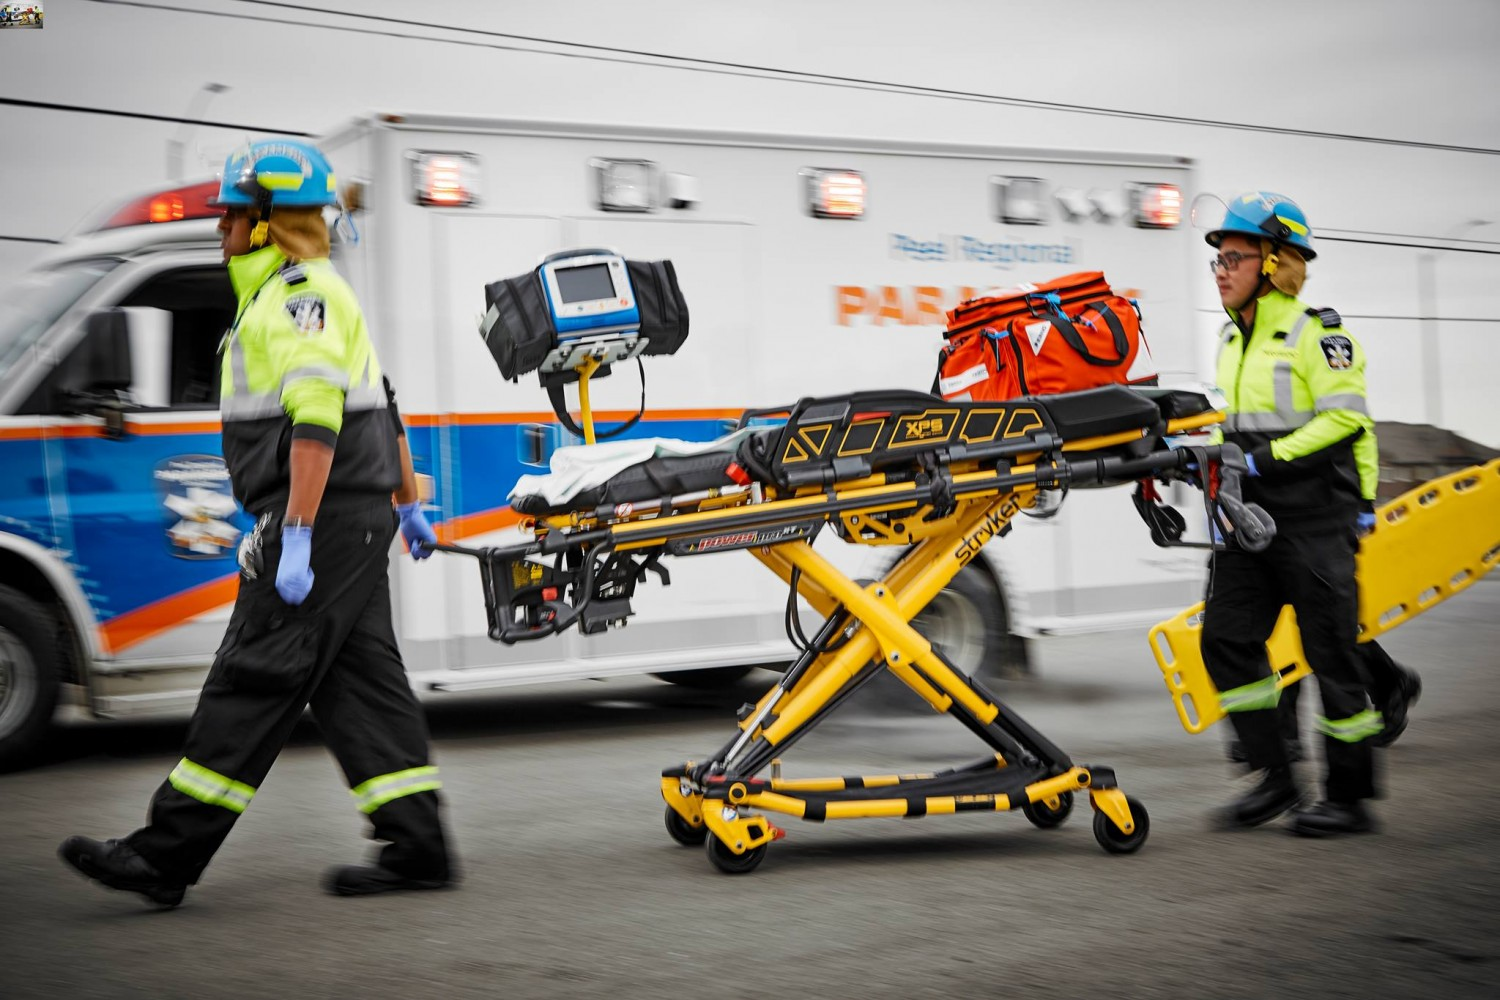 In 2019, regional taxpayers funded more than 6,000 paramedic visits to Toronto Pearson International Airport